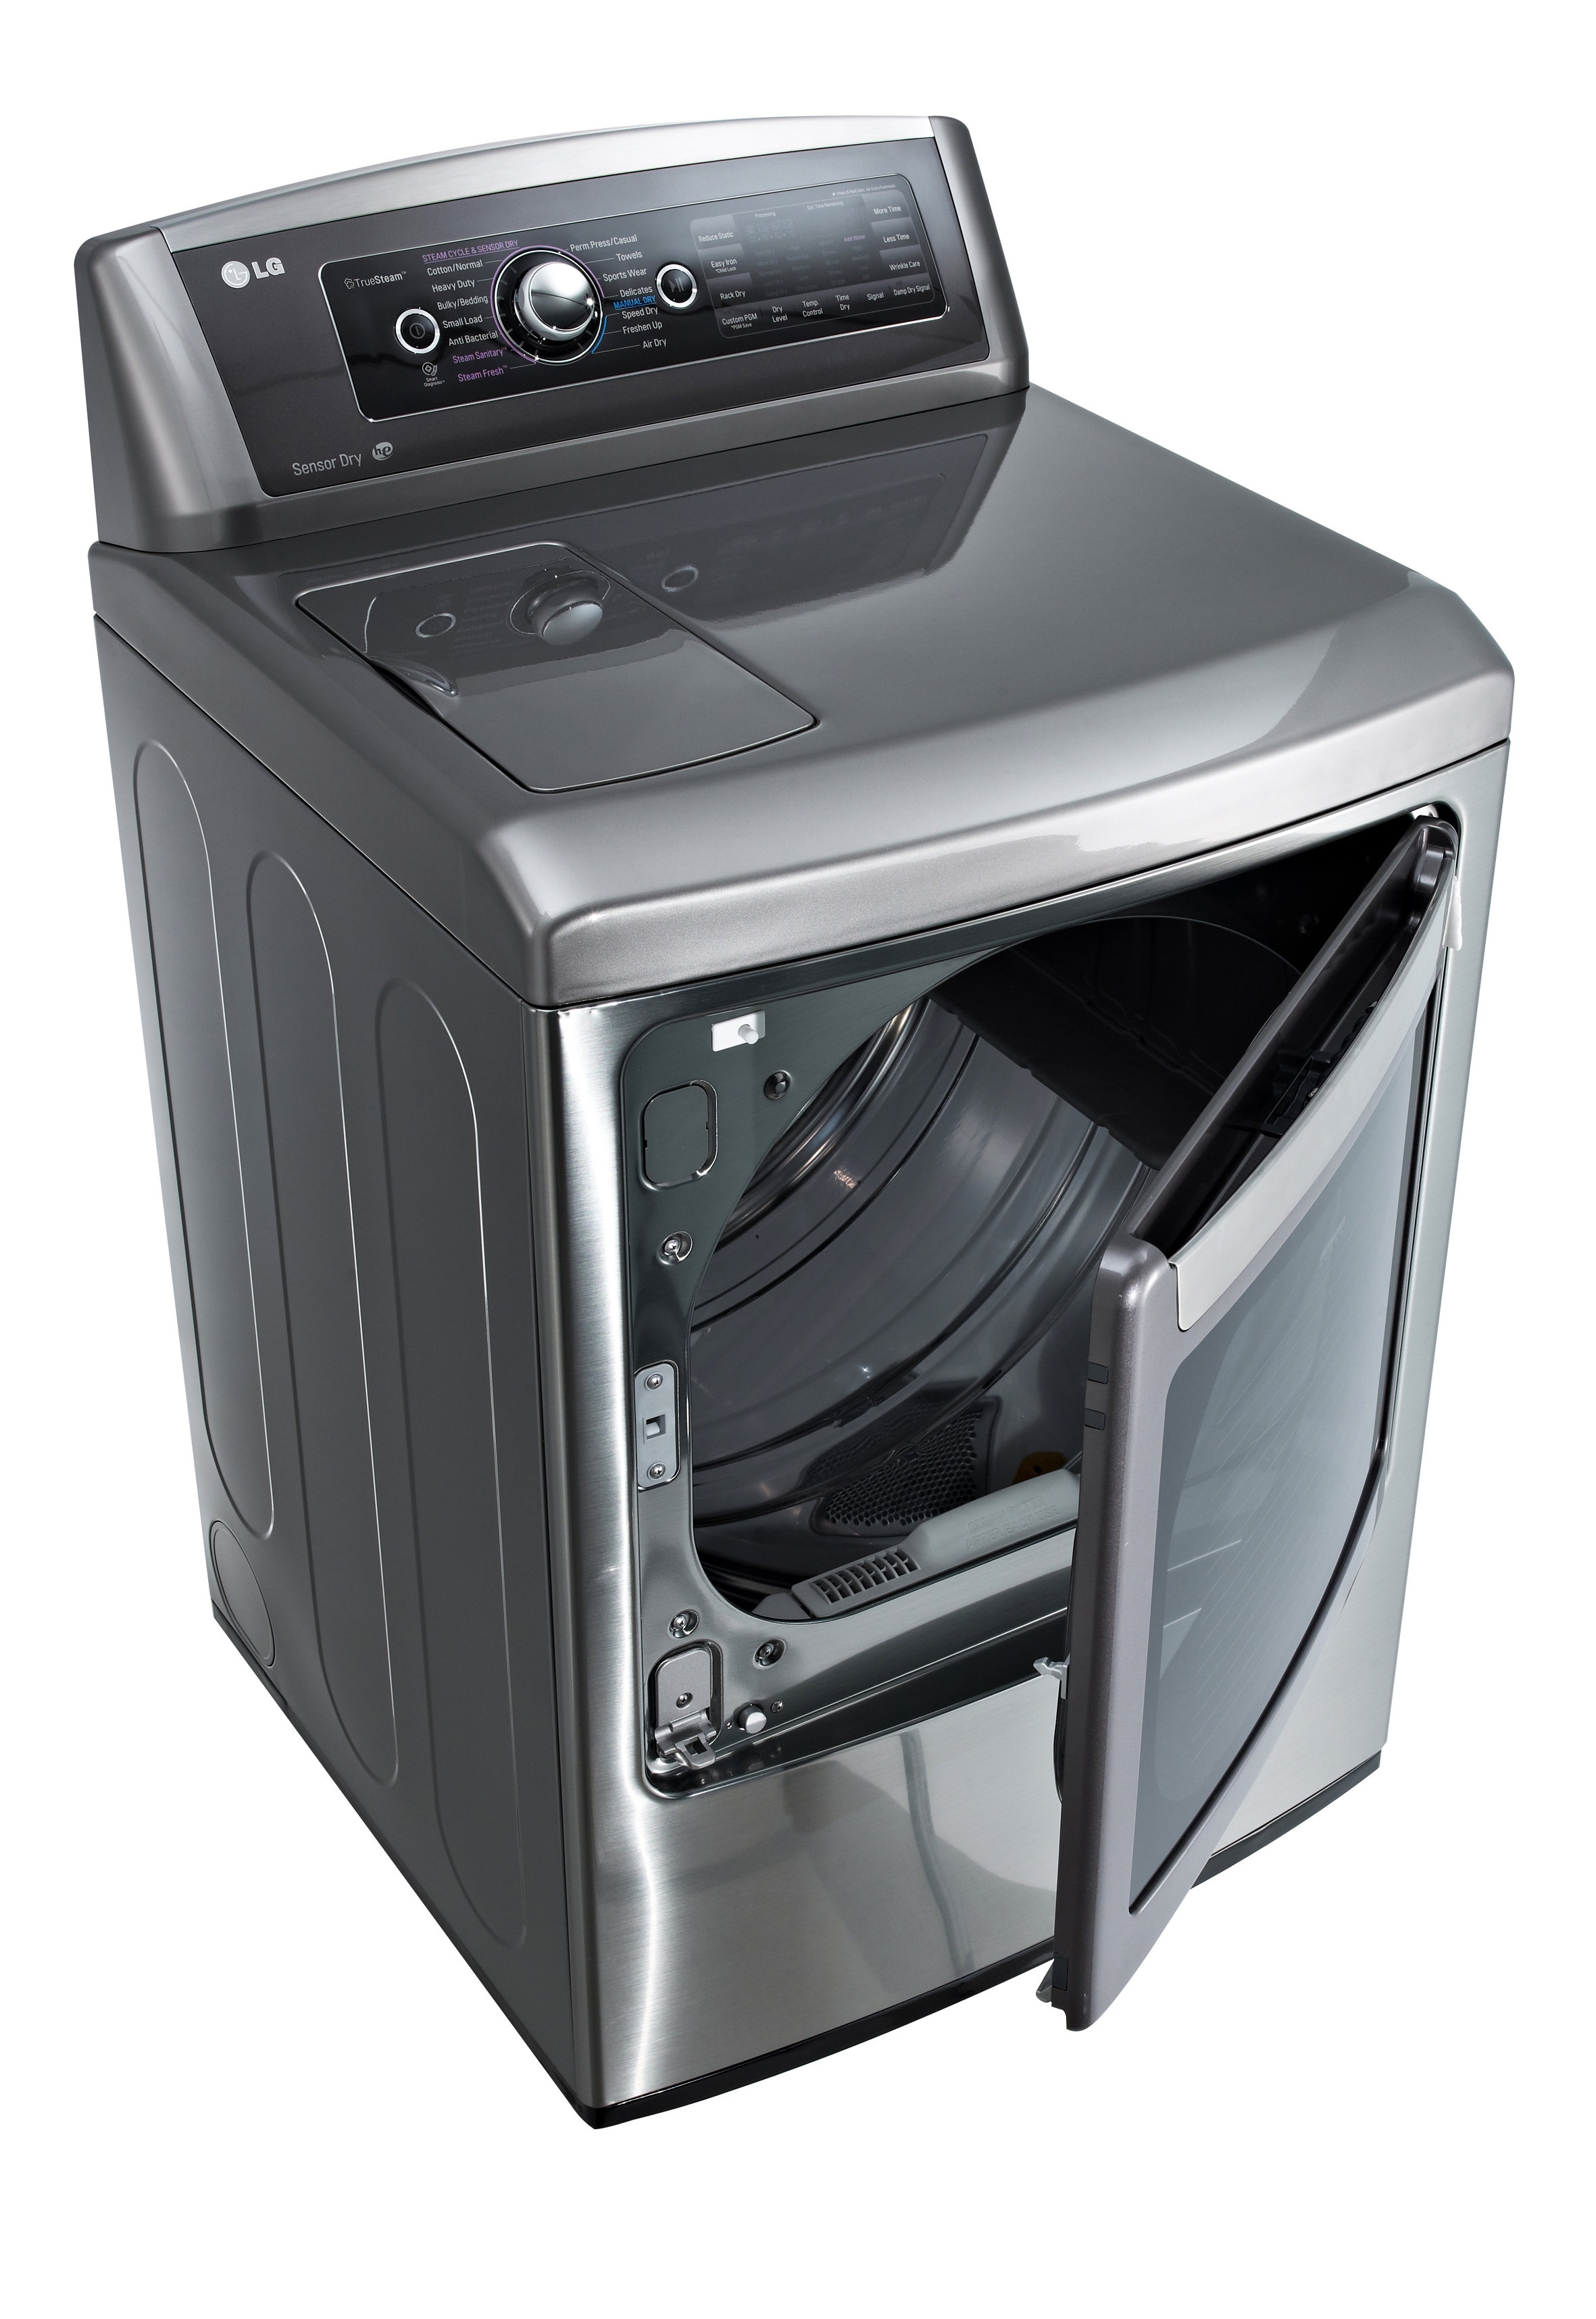 LG front-load washing machine with door opened from the side